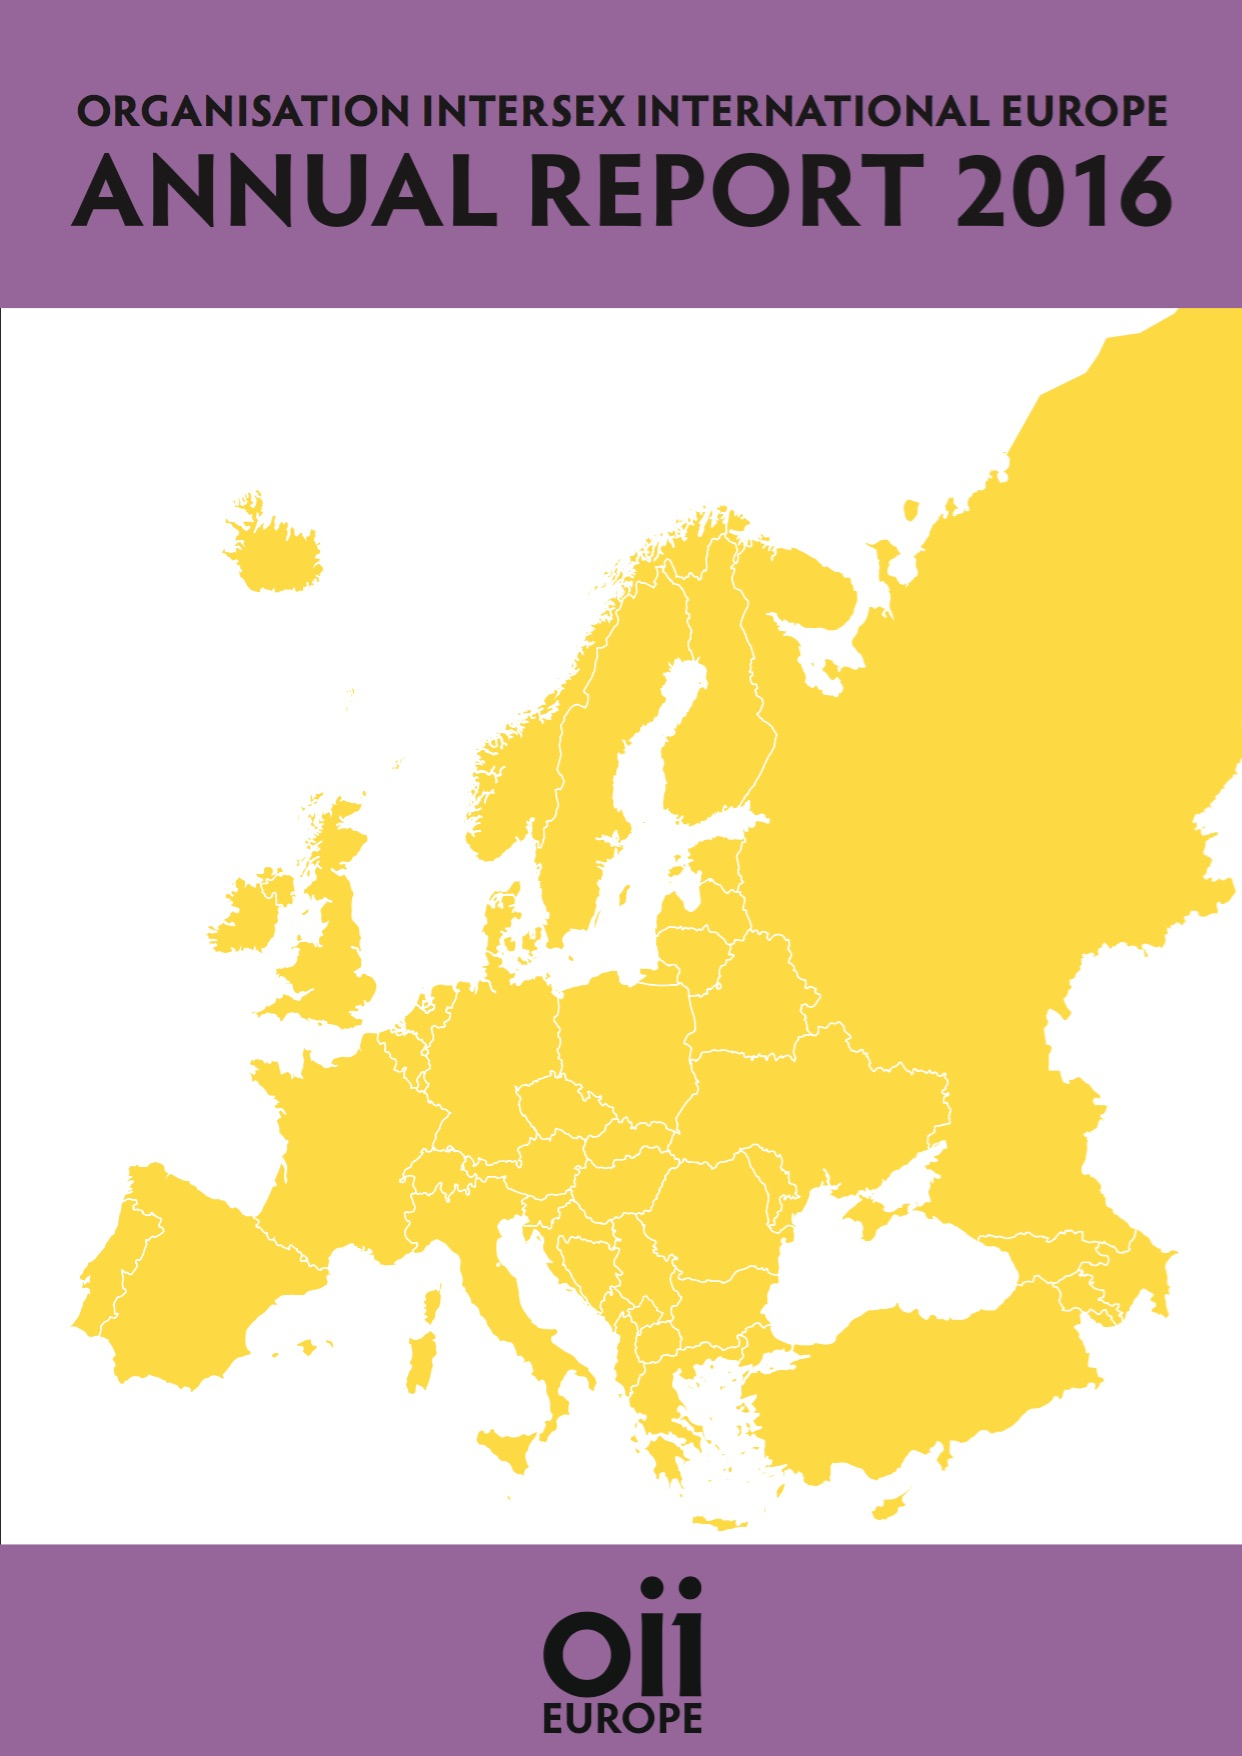 OII Europe Annual Report 2016